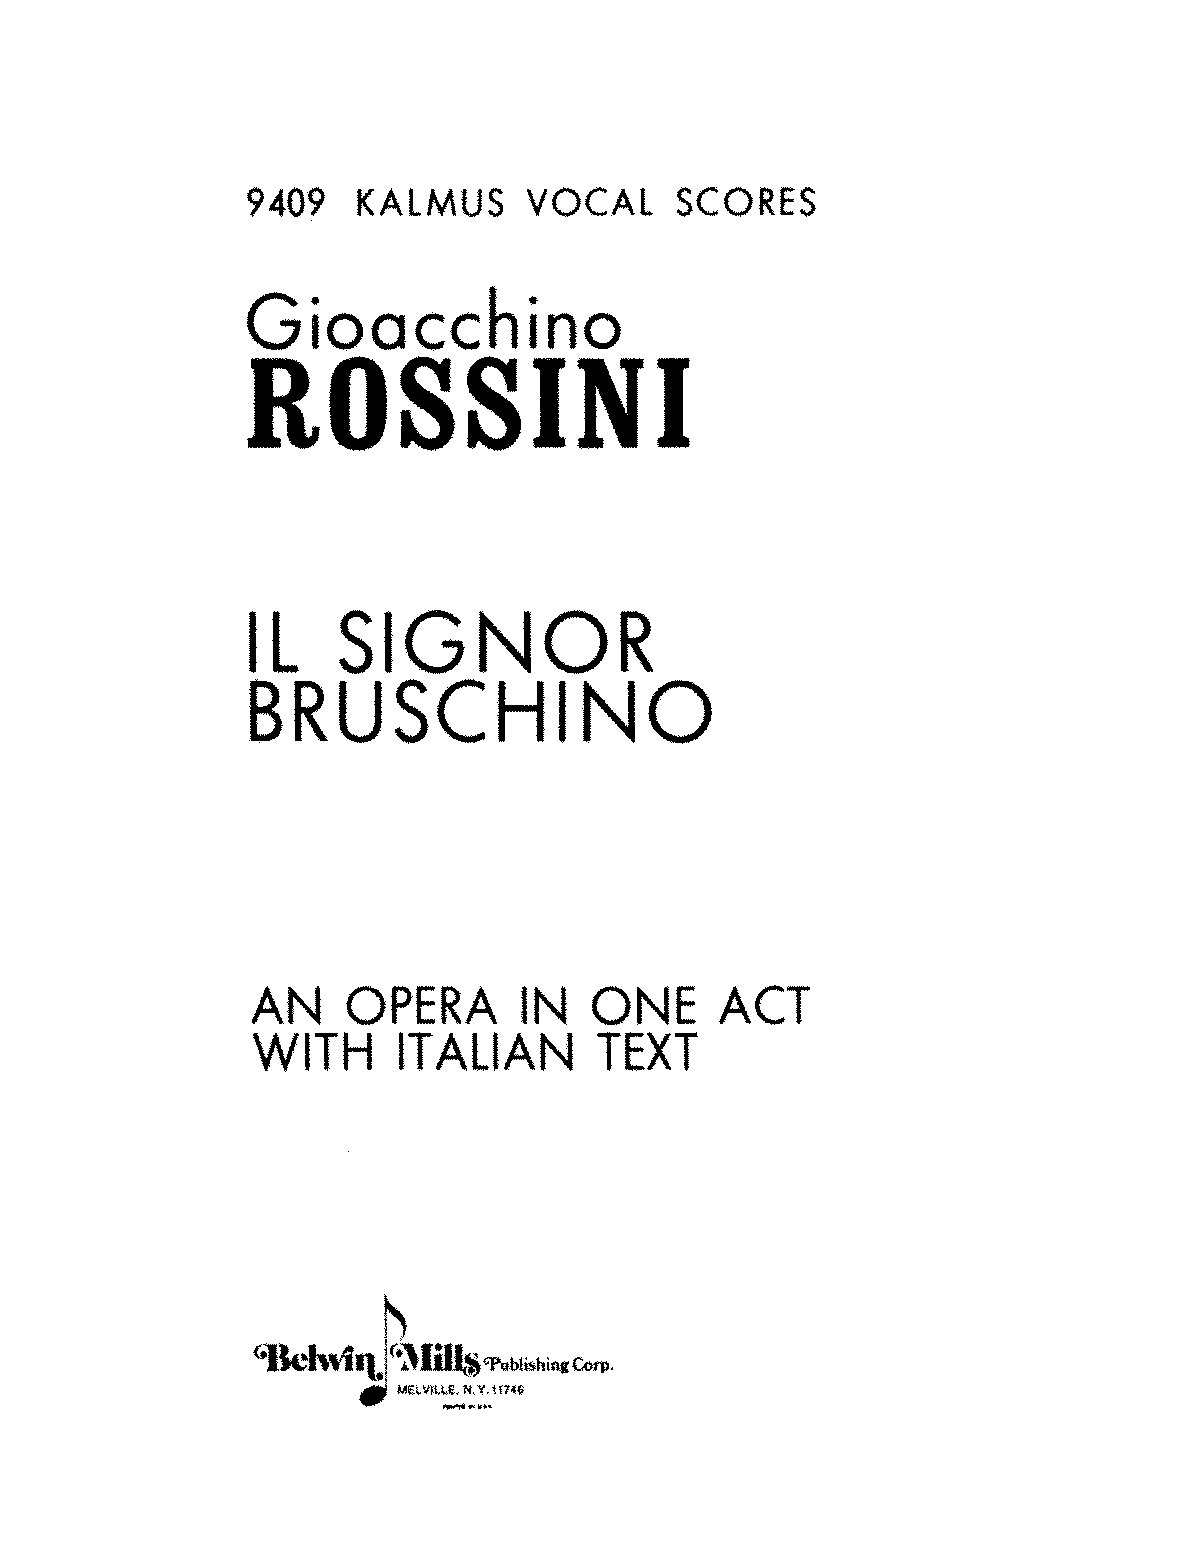 PMLP76180-Rossini - Vocal score - Il signor Bruschino.pdf